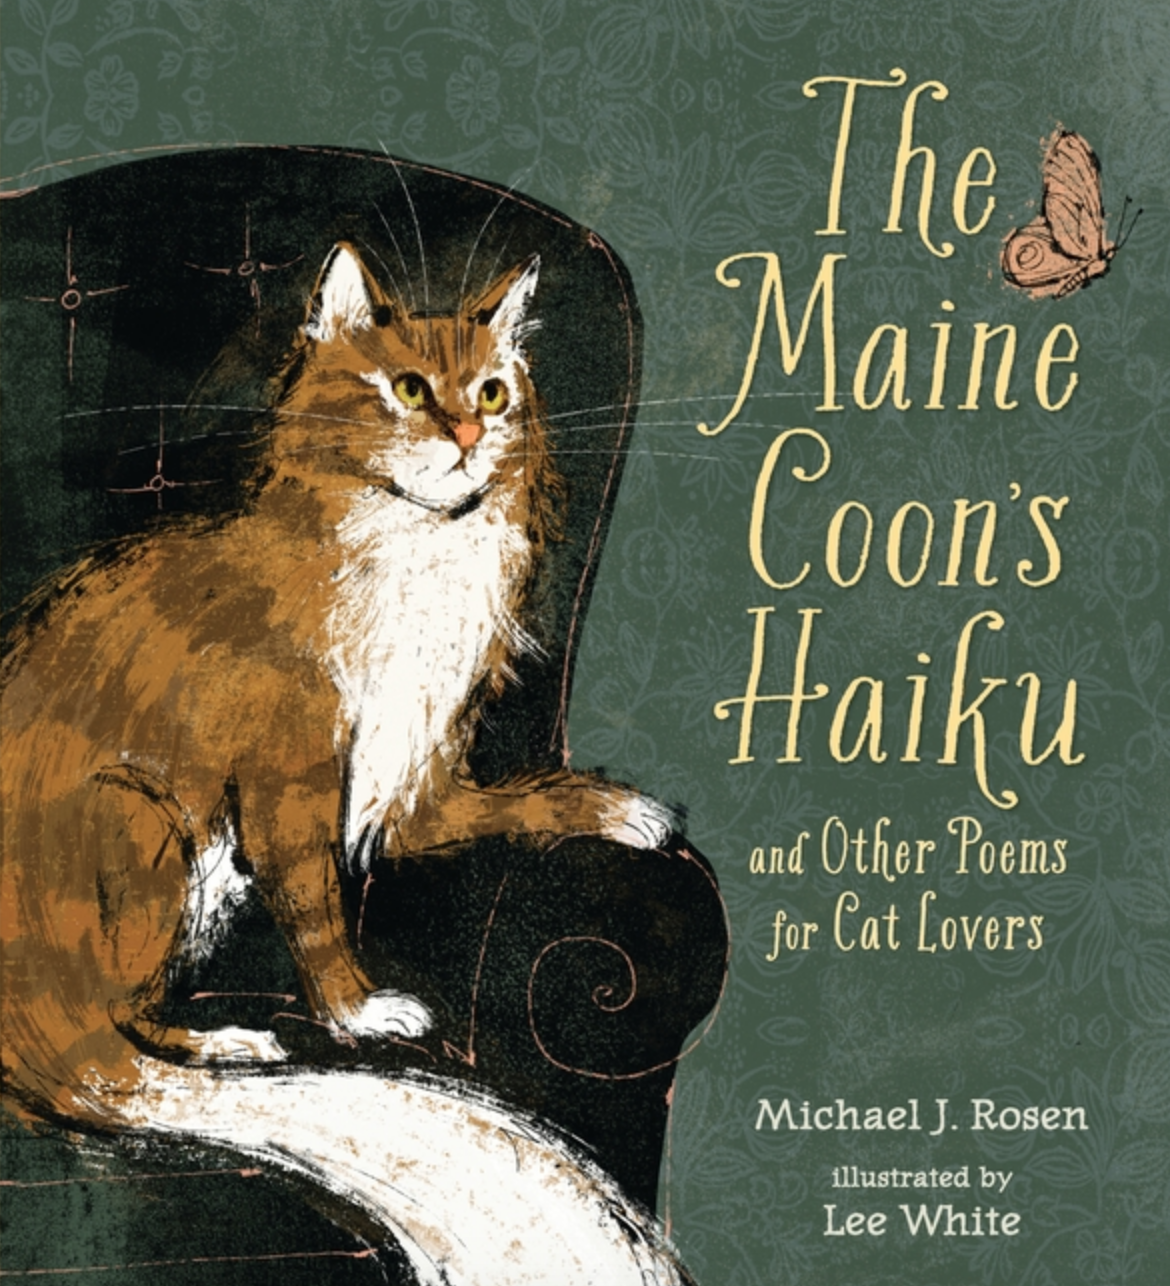 The Maine Coon's Haiku - Written by Michael J. Rosen, Illustrated by Lee WhitePublication Date: 3/10/15In evocative haiku, Michael J. Rosen depicts twenty different breeds of cats—whether mischievous or mysterious, comical or commanding.Some cats have names that suggest far-off lands, like the Turkish Angora and the Norwegian forest cat. Others allude to places closer to home, such as California's ragdoll and the Maine coon. Set against Lee White's graceful illustrations, with intriguing facts about each of twenty breeds at the end, this charming haiku collection for lovers of America's most popular house pet provides the purr-fect book to curl up with.